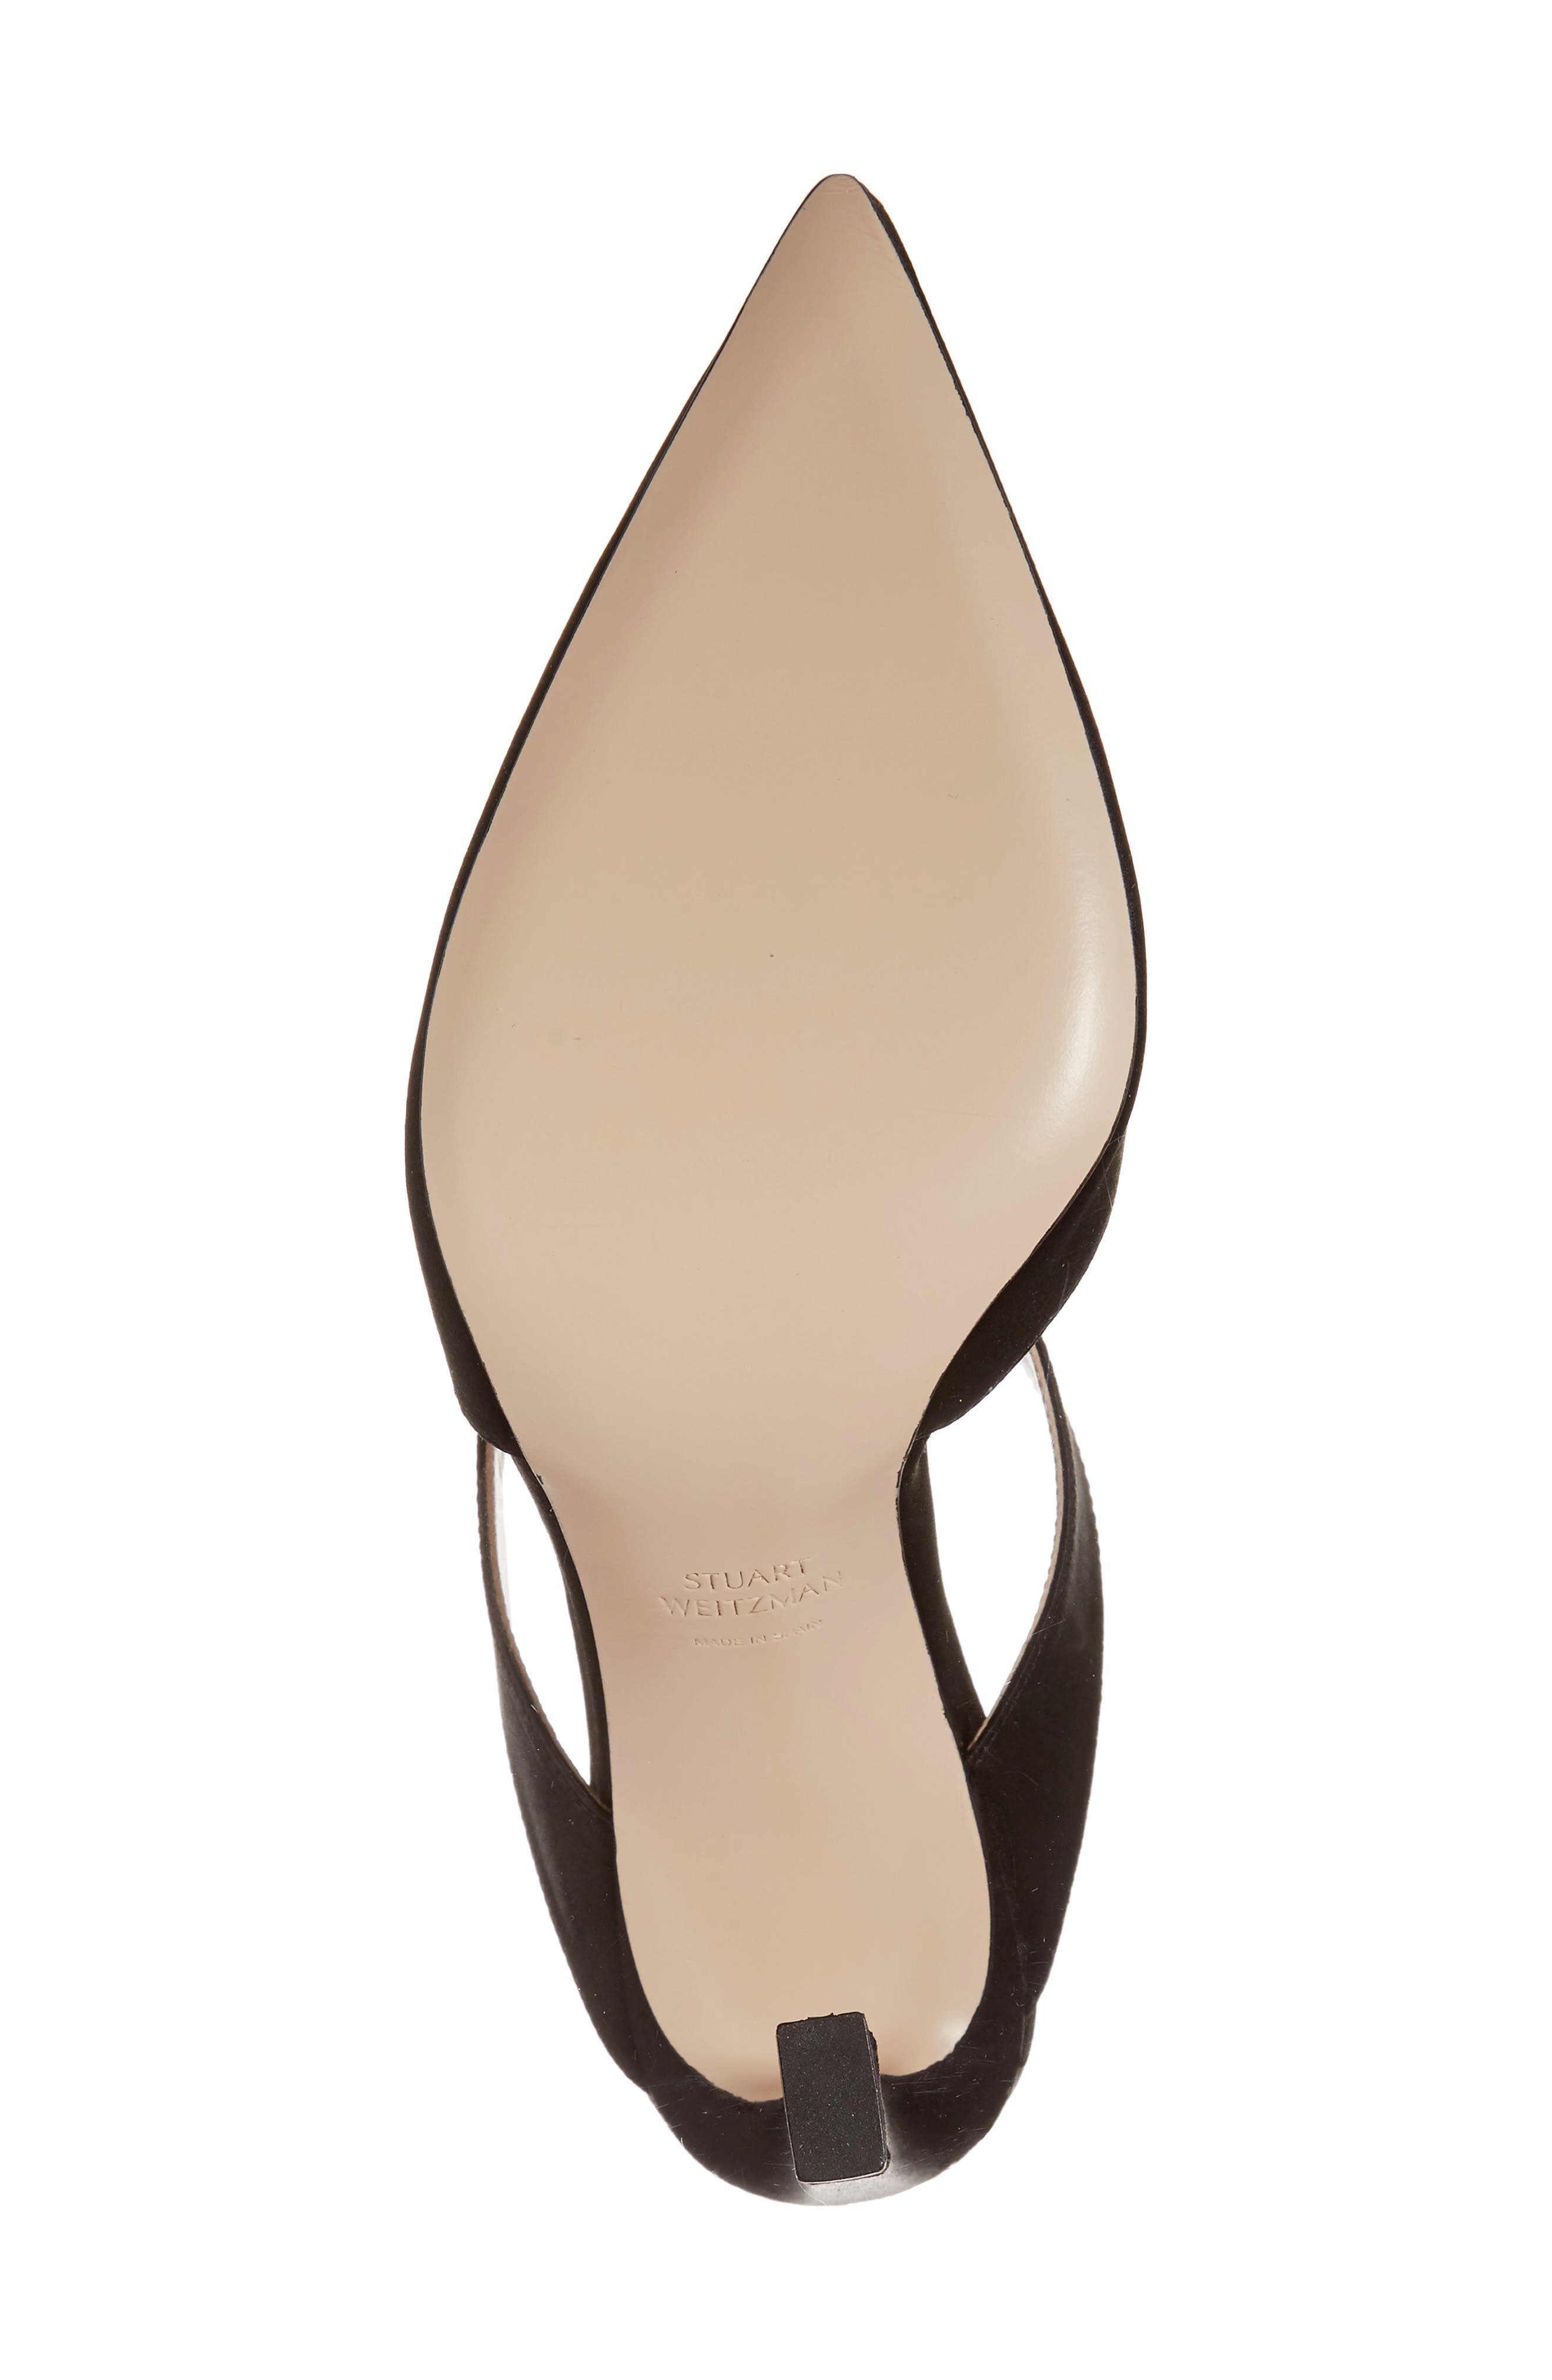 Event Pointy Toe Pump,                             Alternate thumbnail 6, color,                             002